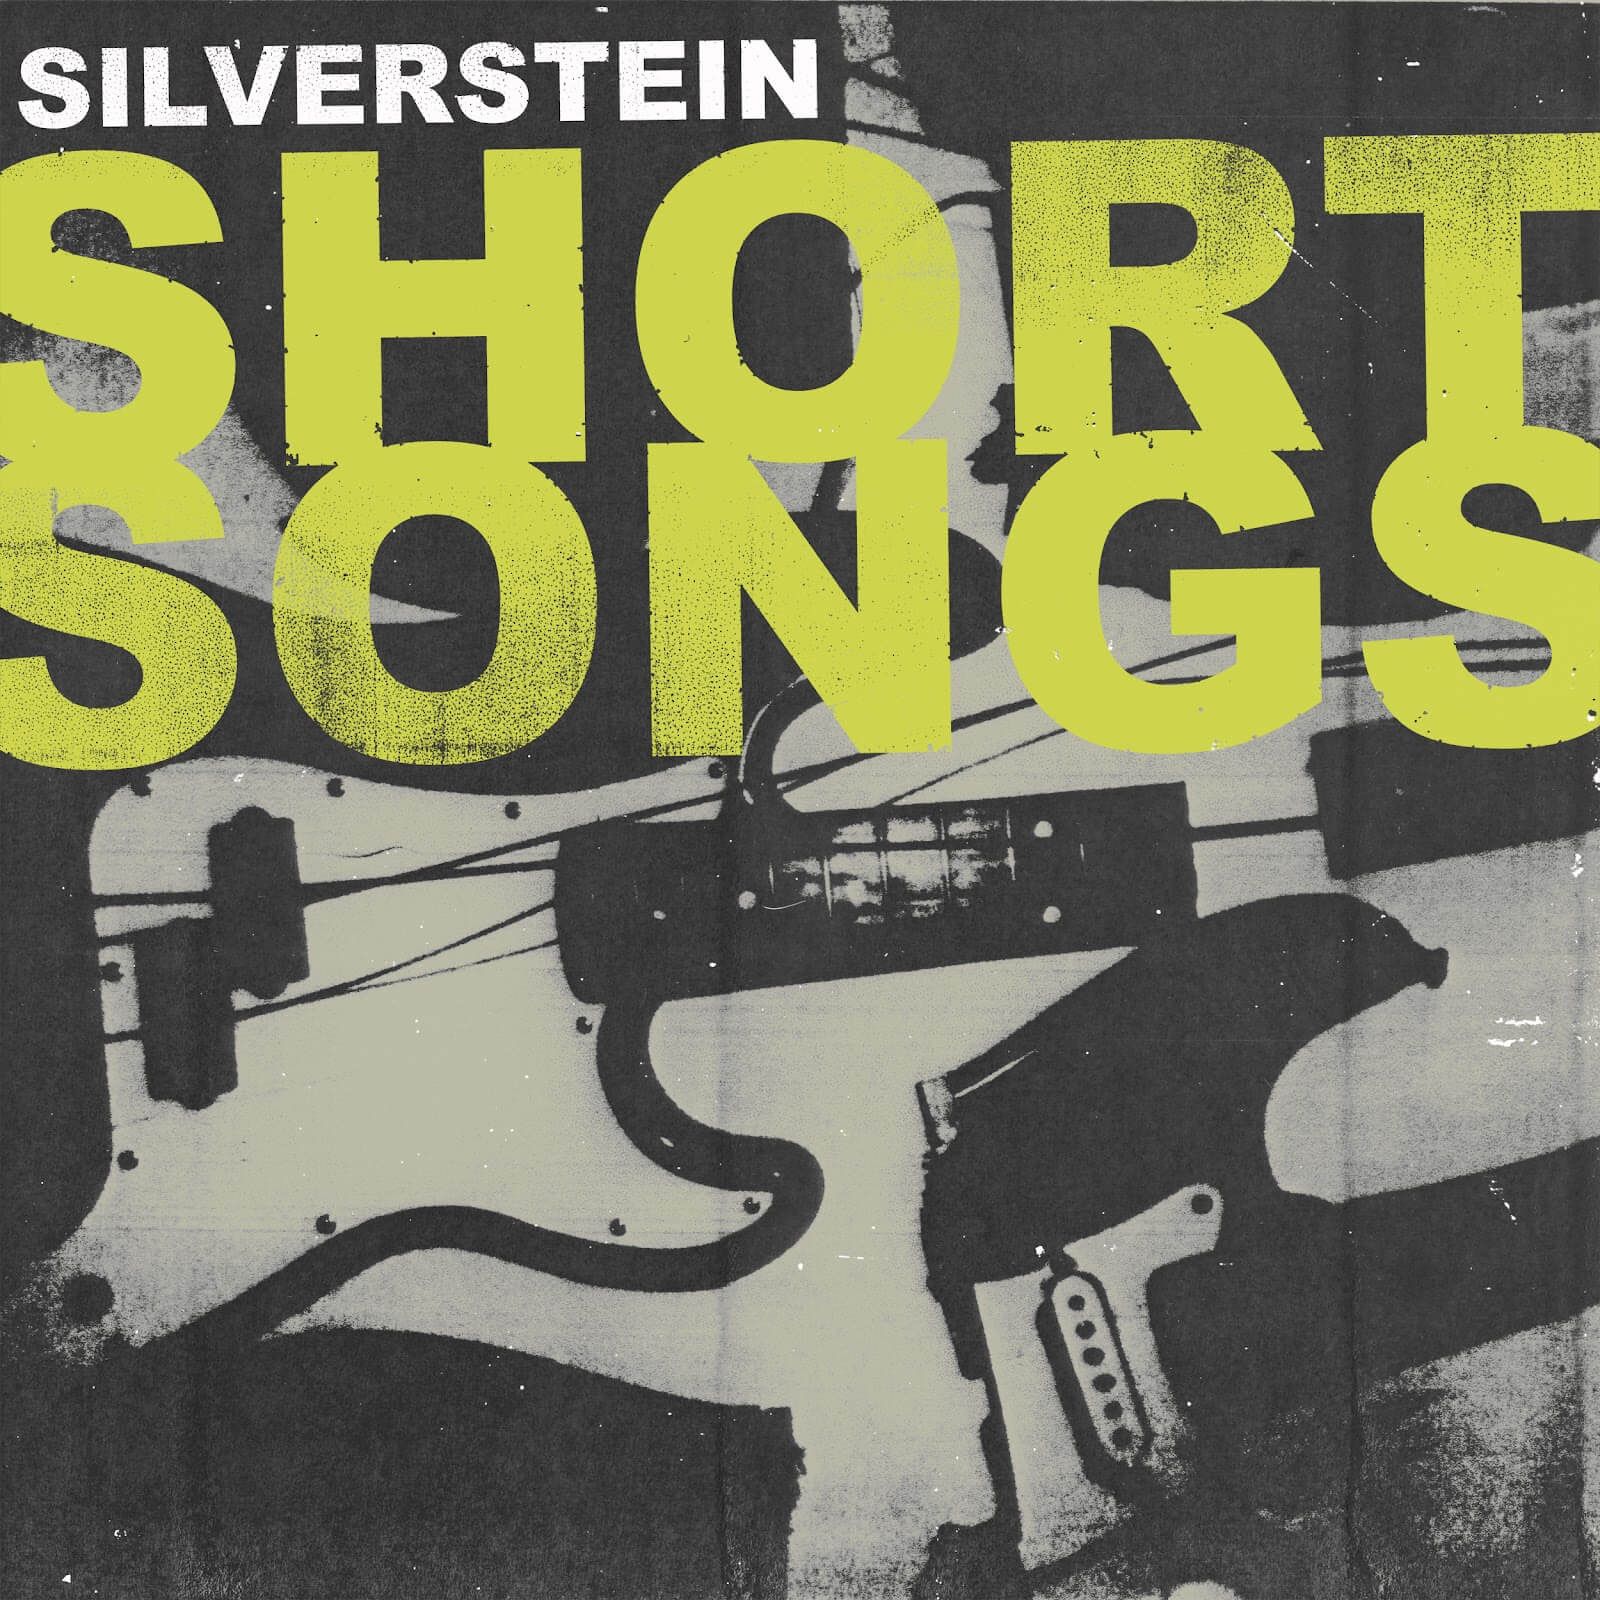 Album cover of Silverstein's Short Songs album